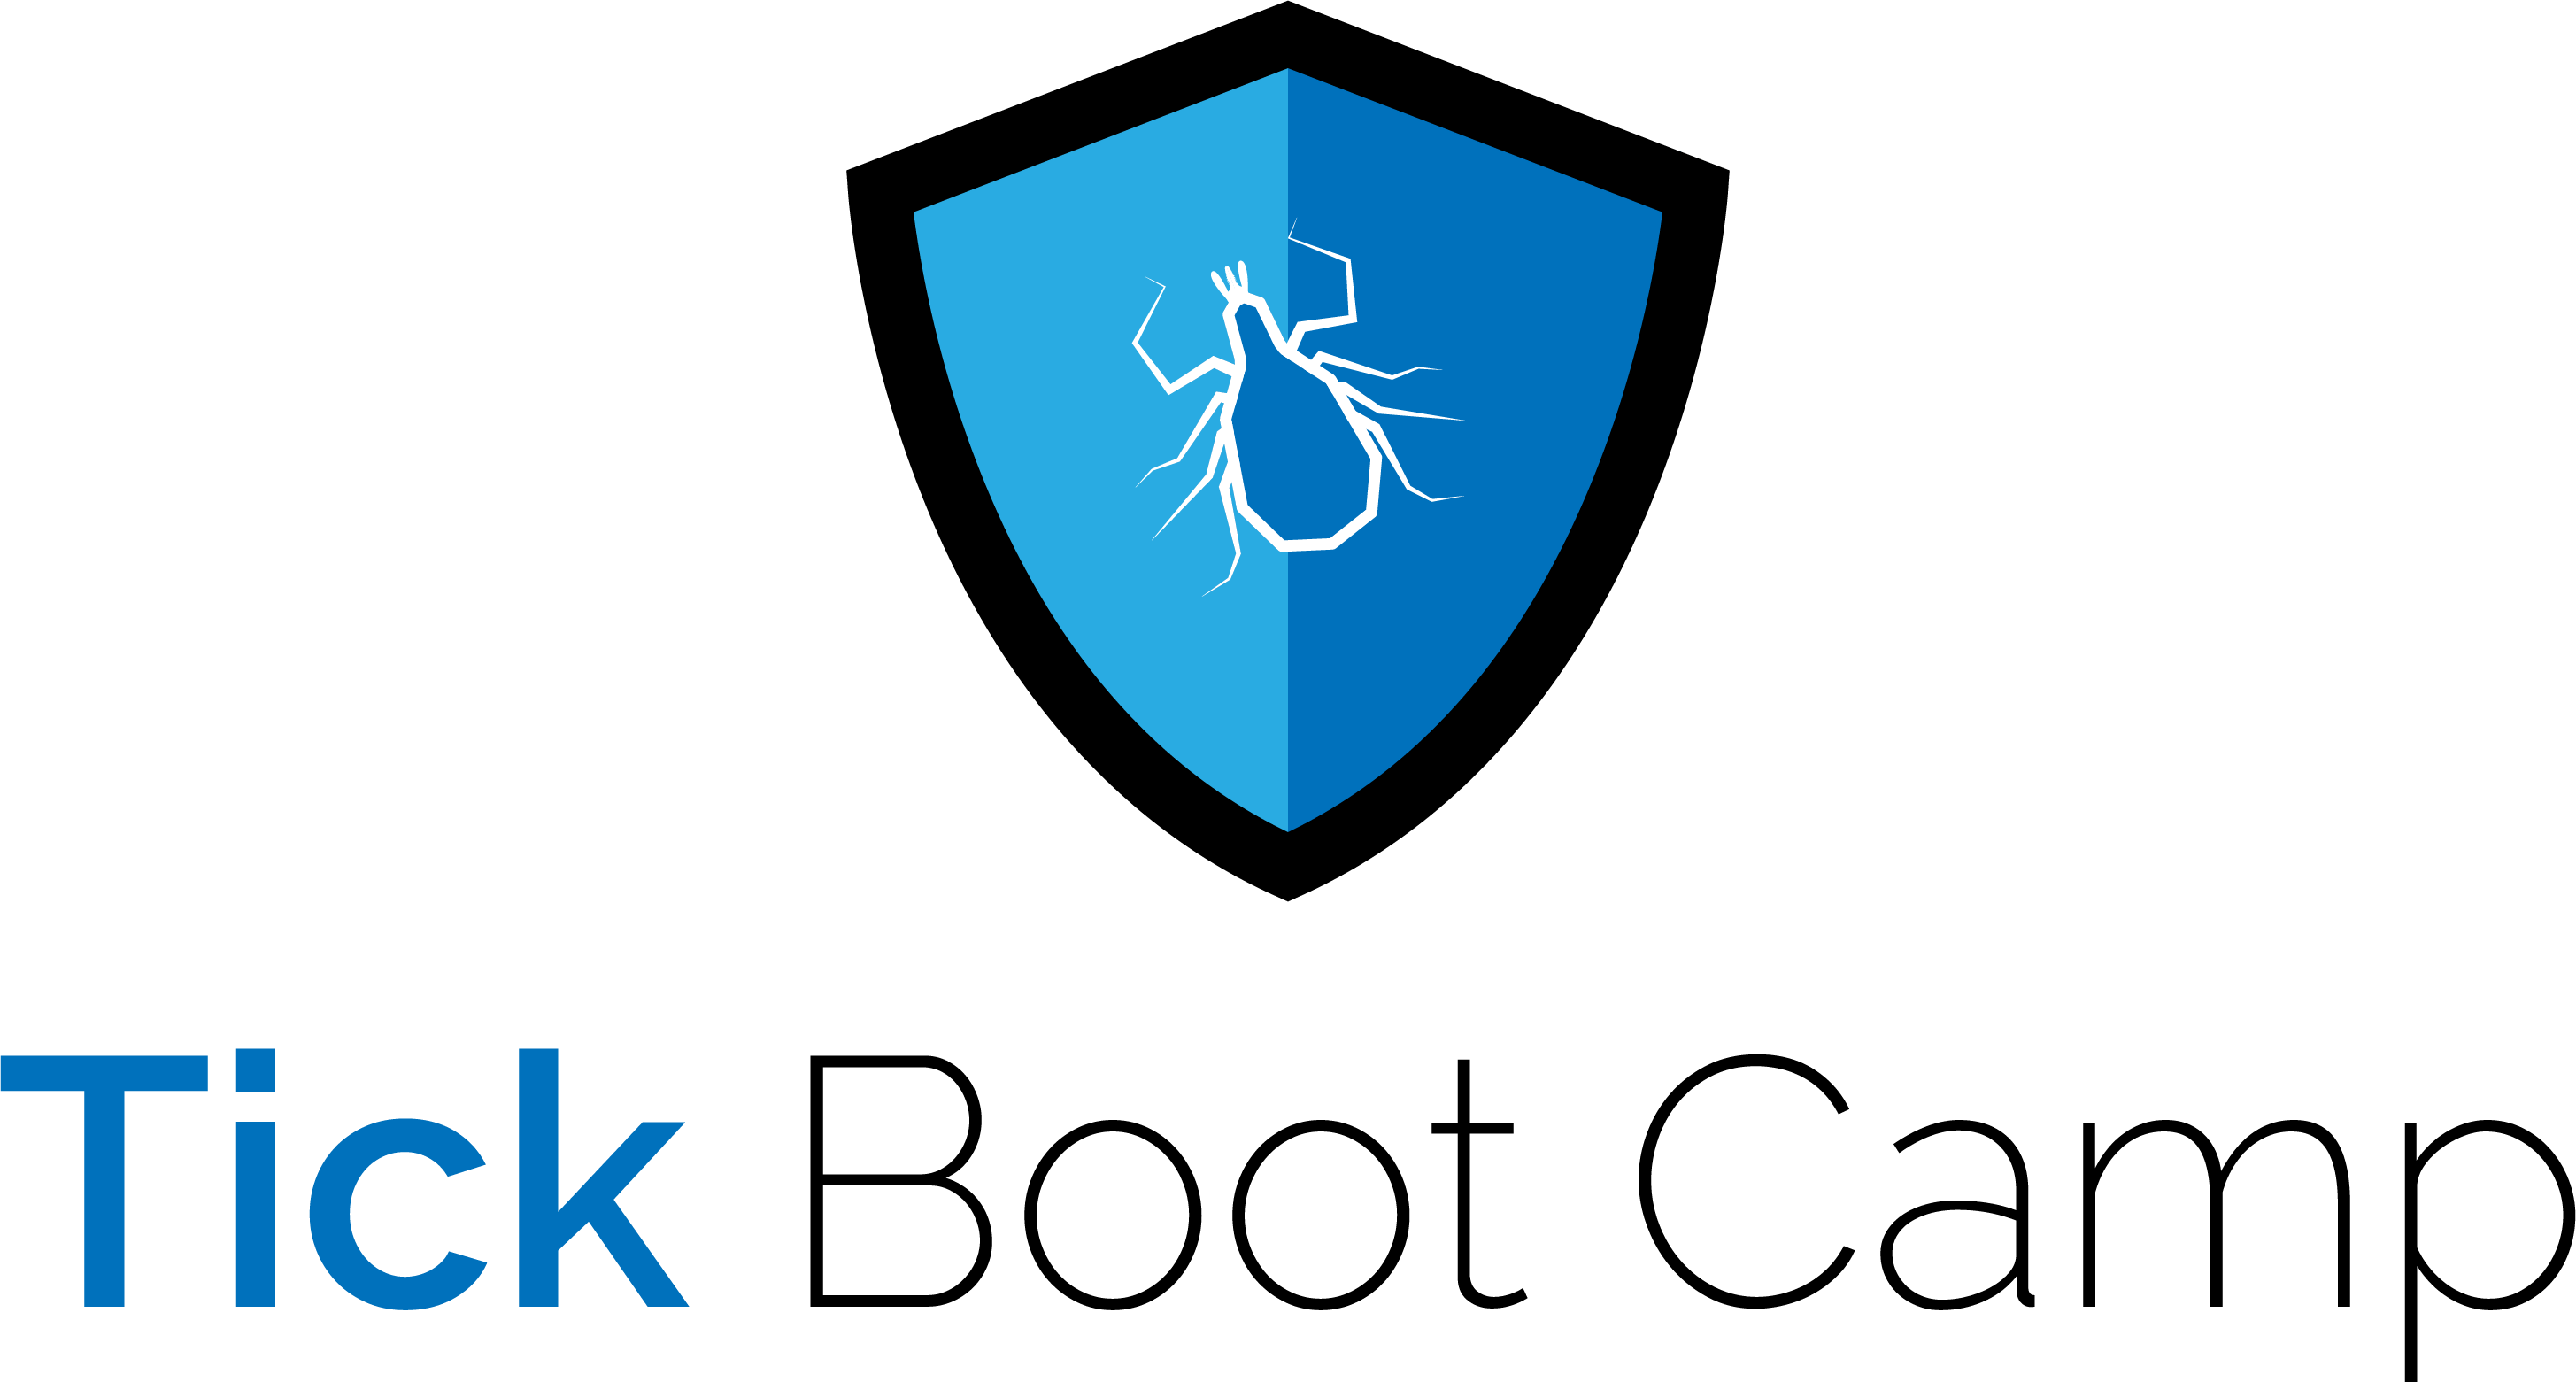 Tick Boot Camp